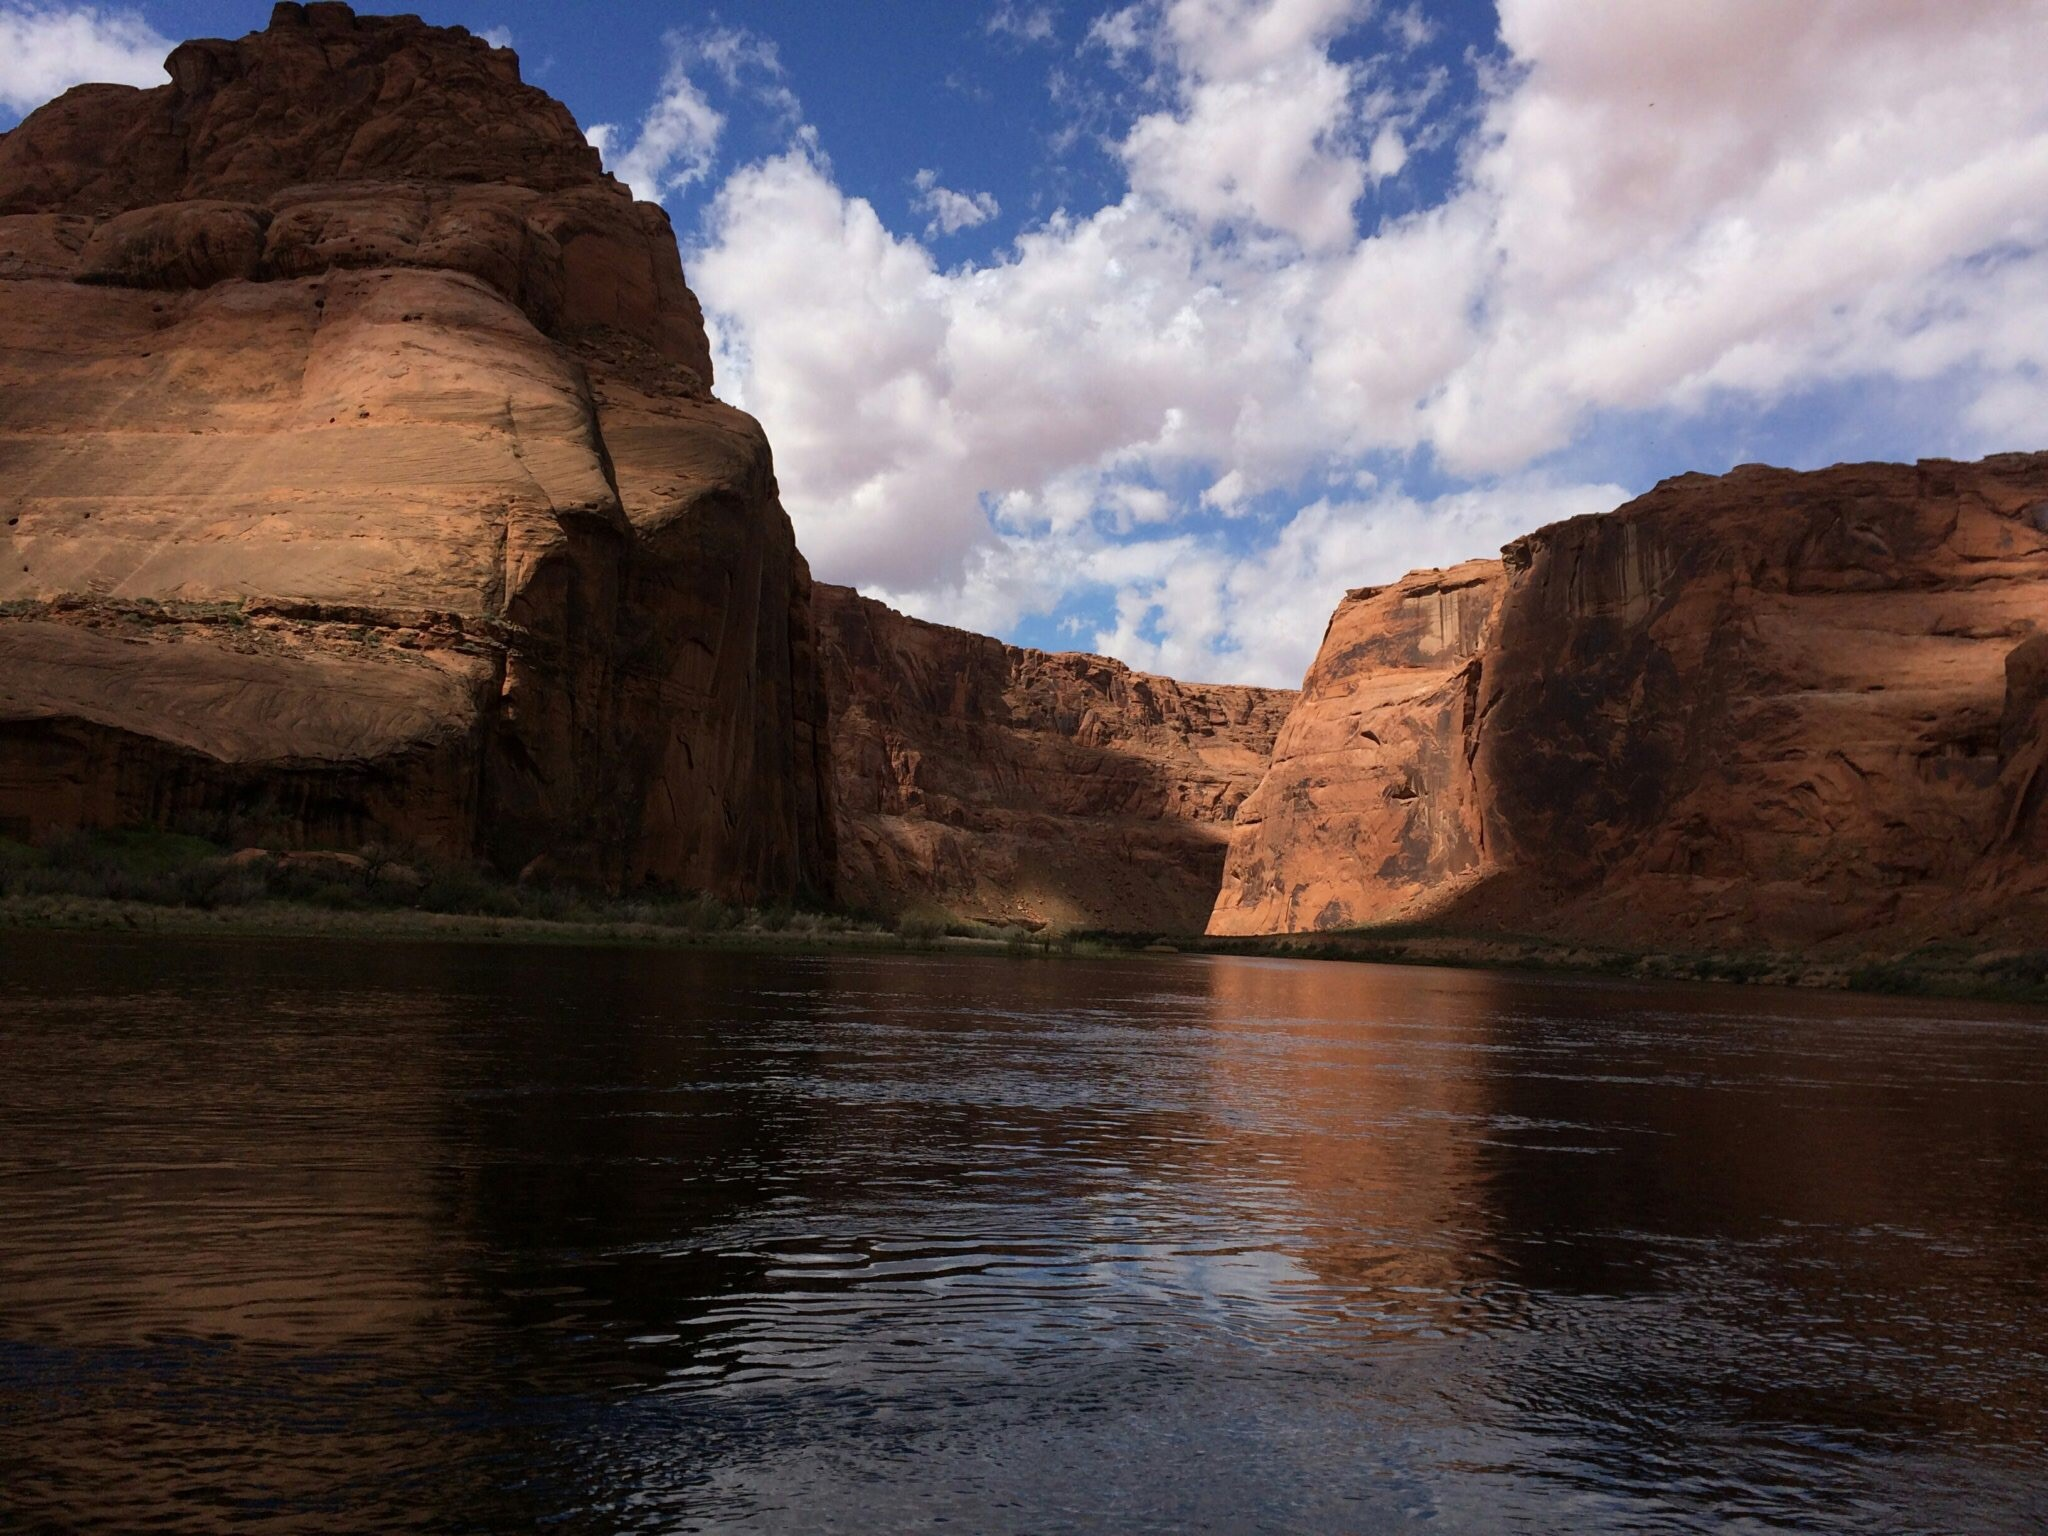 Horseshoe Bend from the River